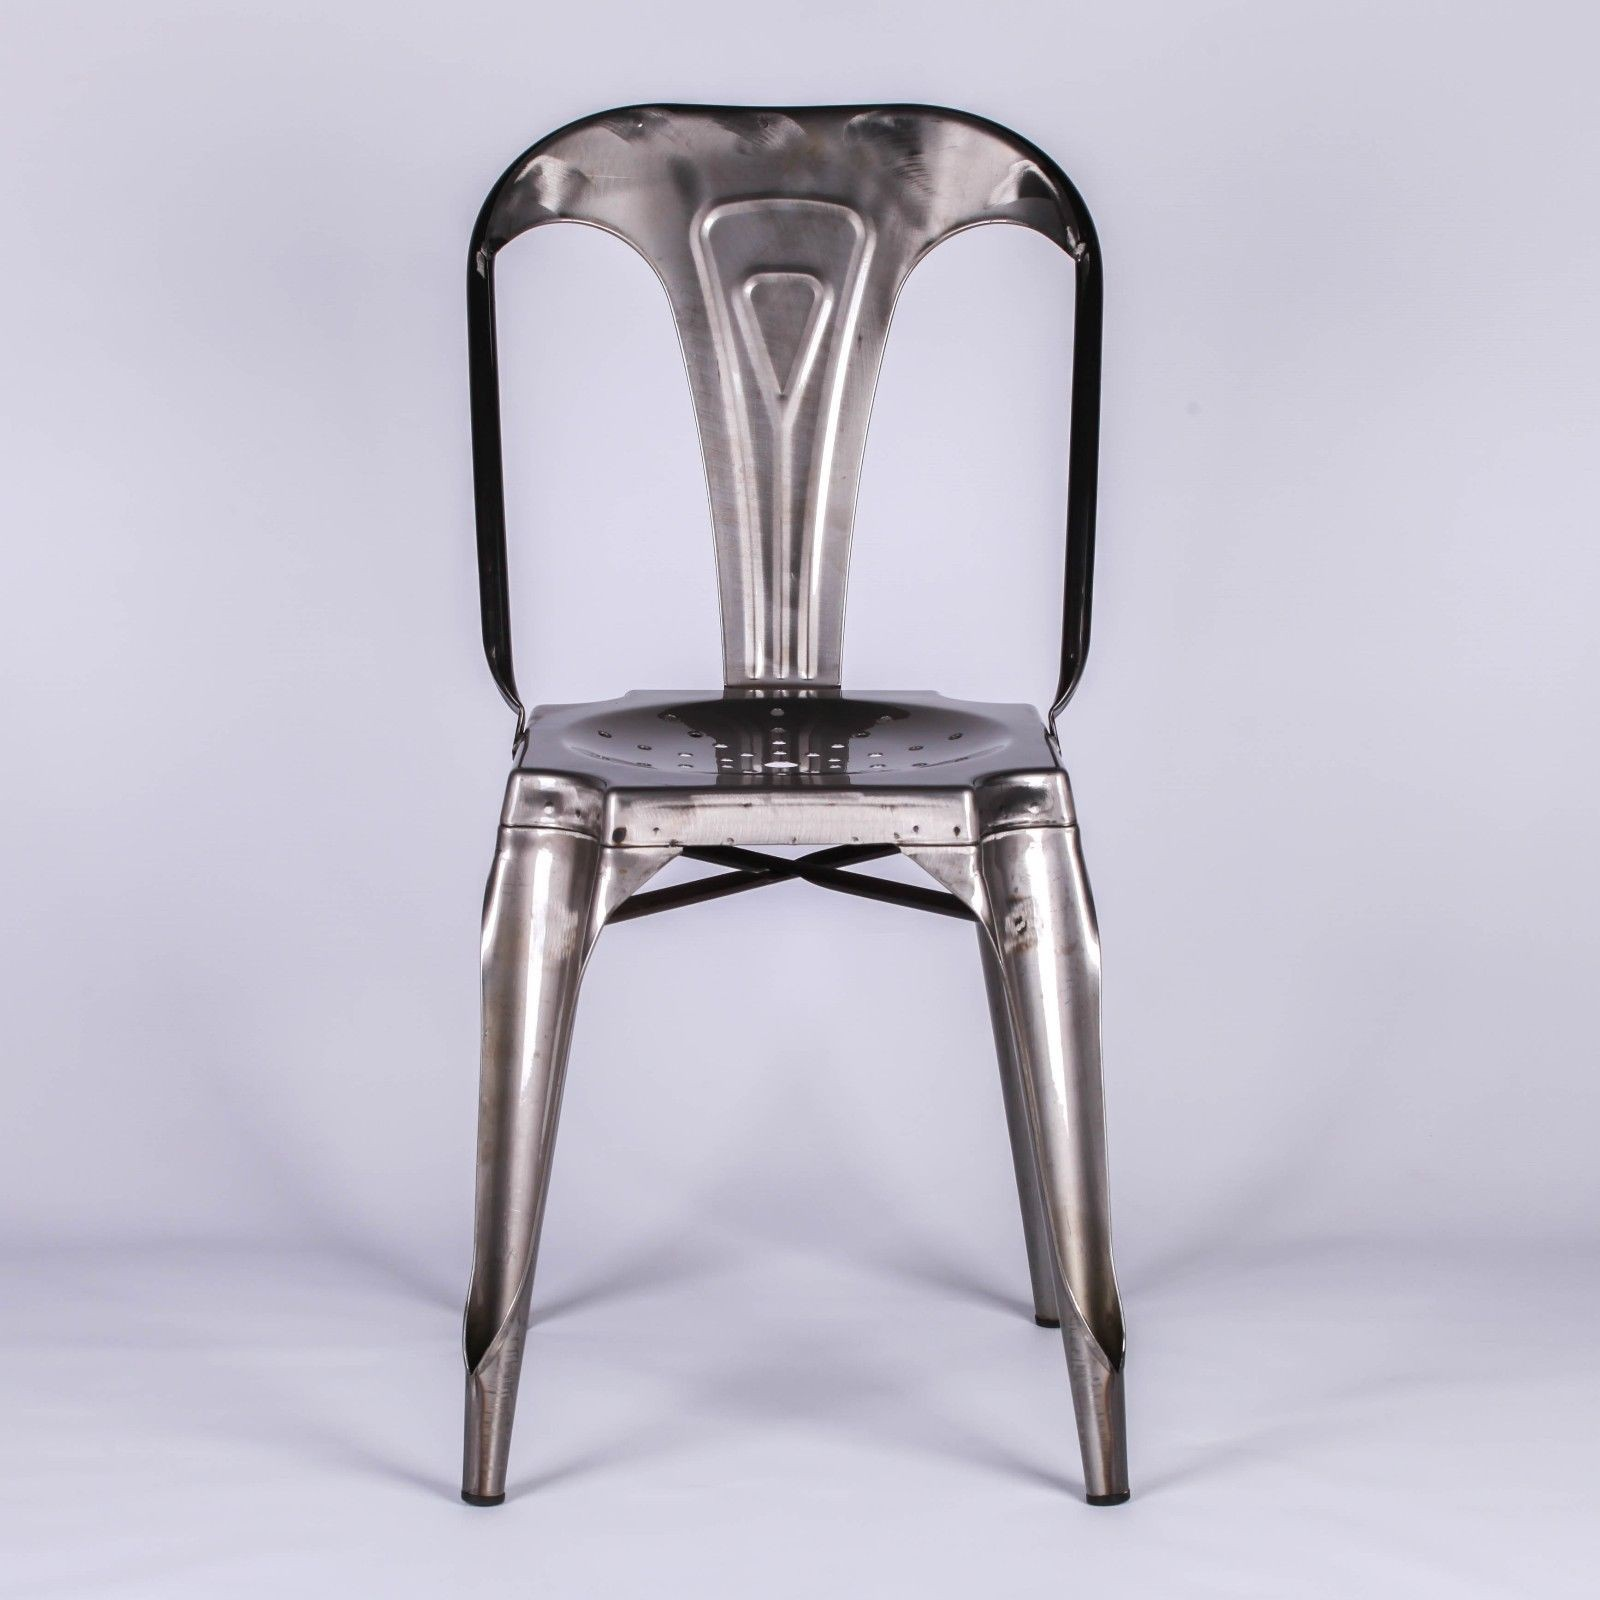 Metal Dining Chairs Industrial Industrial Cafe Style Metal Dining Chair Furniture La